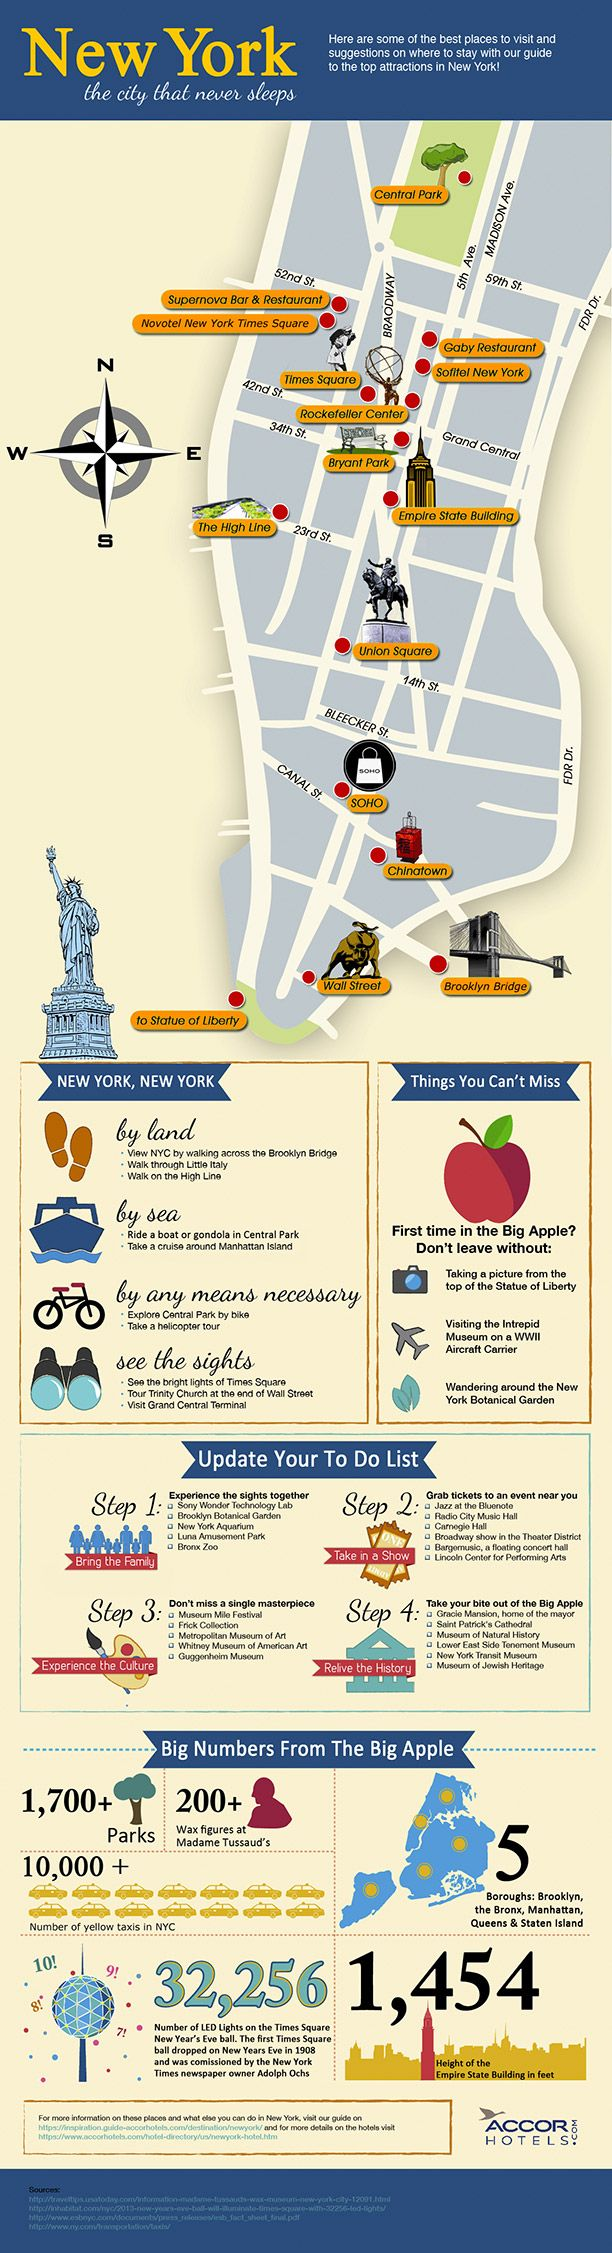 Cities | Tipsögraphic | More cities tips at http://www.tipsographic.com/